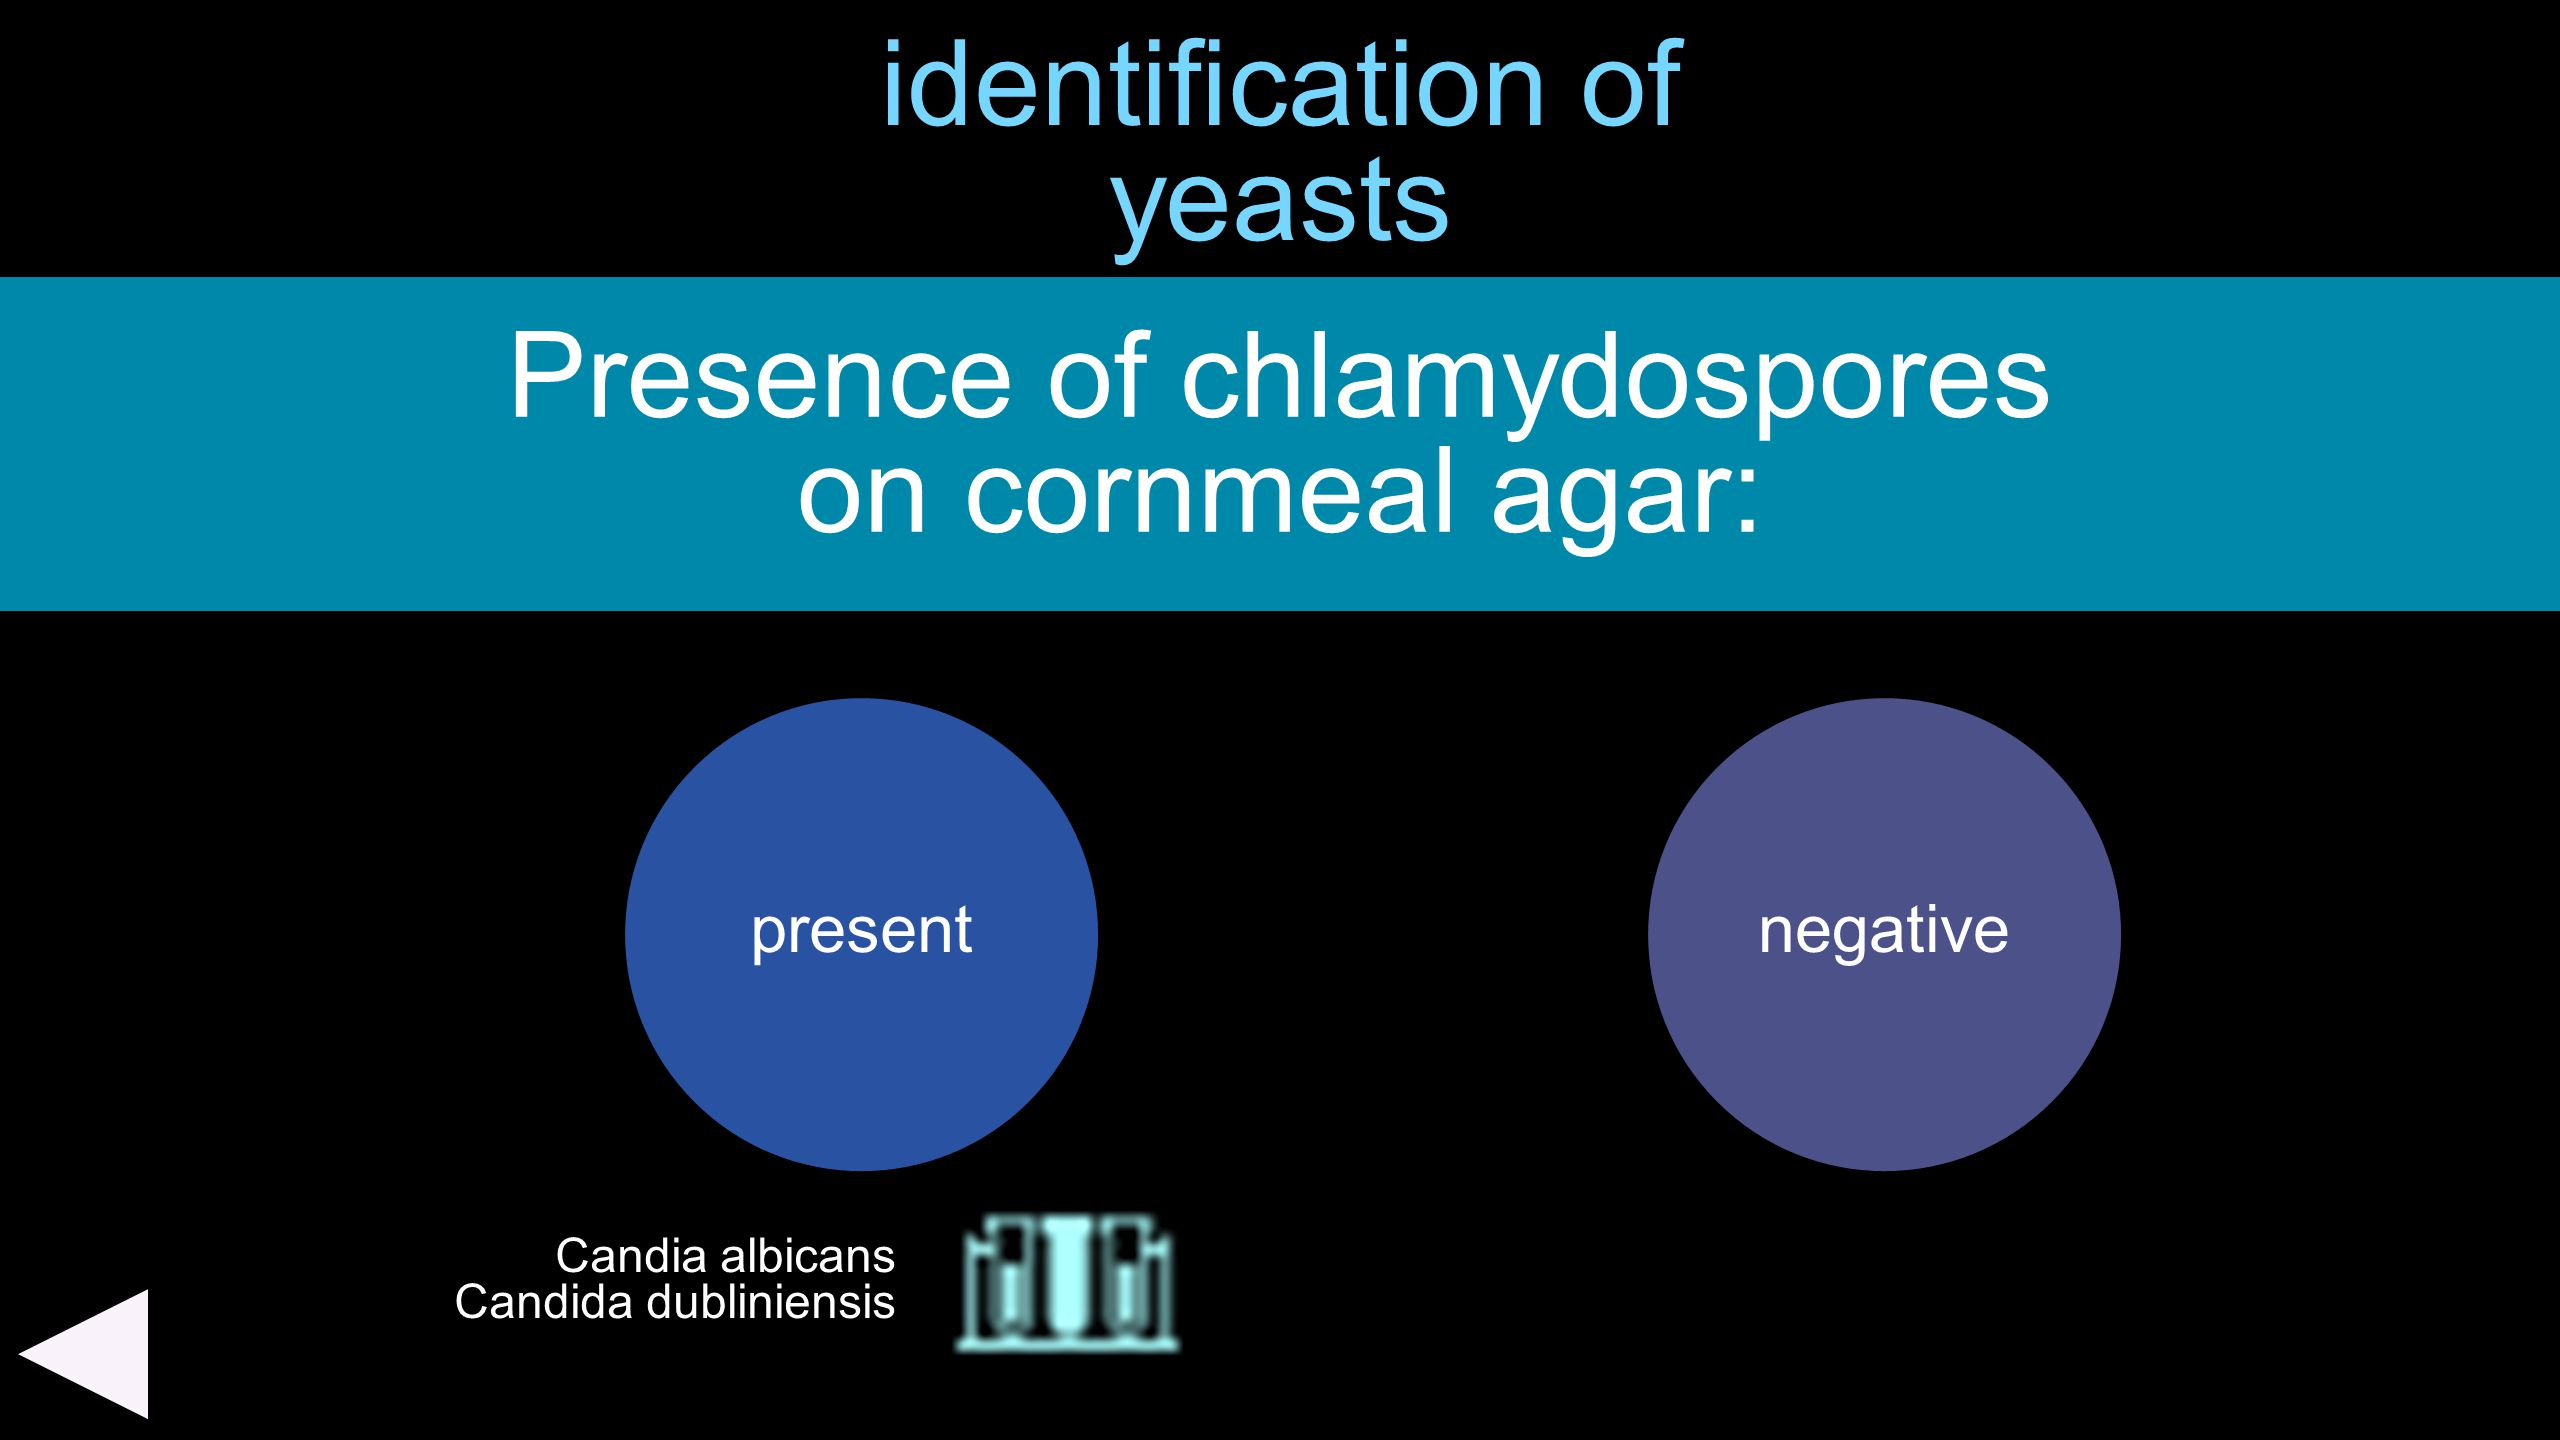 identification of yeasts Presence of chlamydospores on cornmeal agar: presentnegative Candia albicans Candida dubliniensis